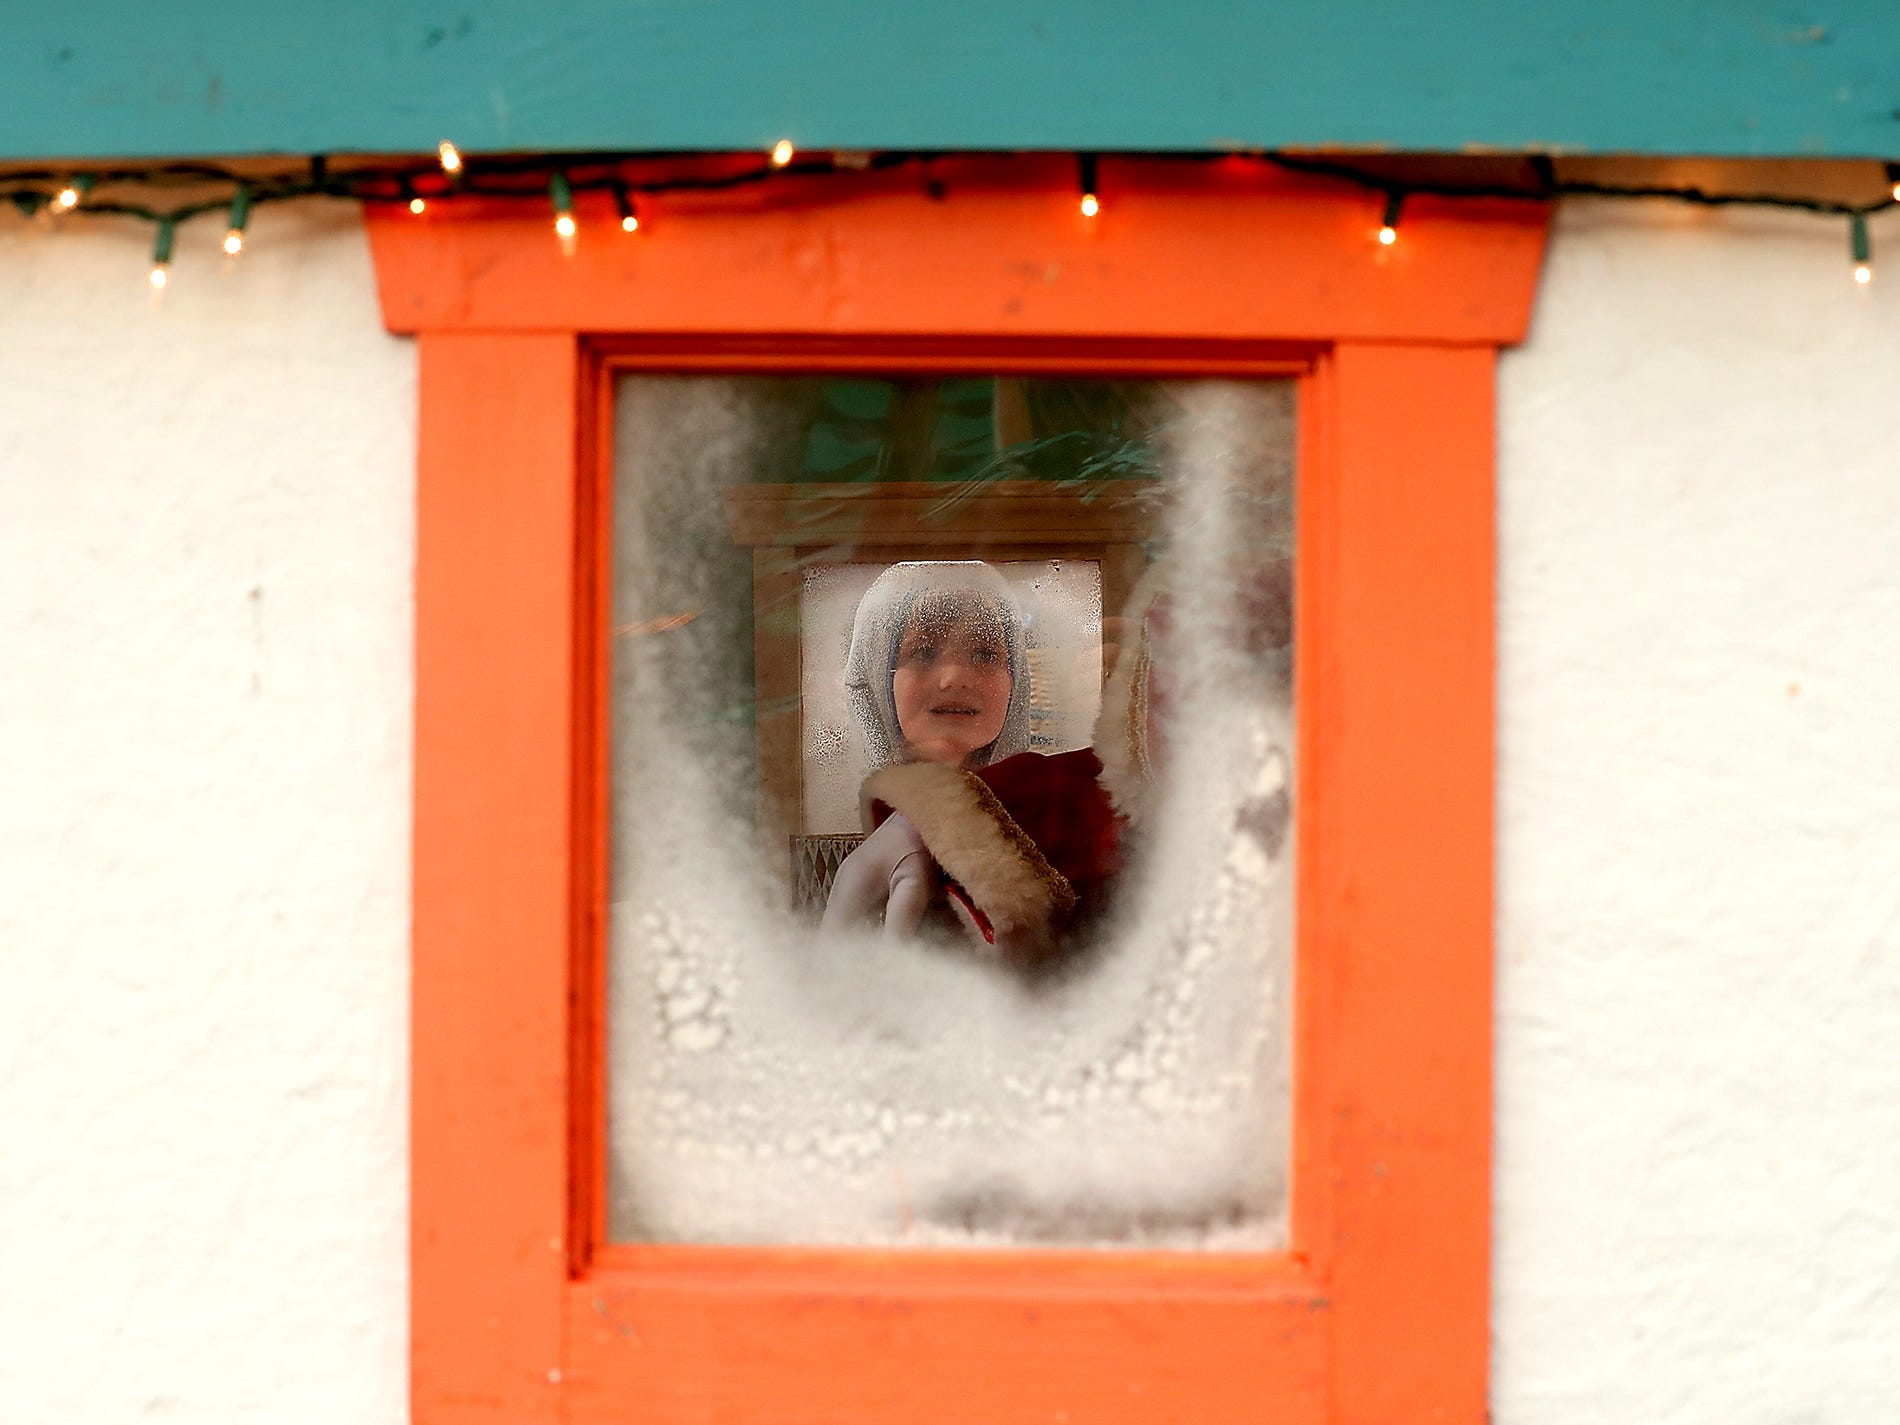 Clark Rasmussen, 6, peeks into the faux-frosty window of Nordic Father Christmas' hut in downtown Poulsbo, Washington on Friday, November 23, 2018. Clark was too shy to talk to Nordic Father Christmas, played by Danny Fritts, so he stuck with peeking into the windows of the small hut as other kids had their photos taken. Those outgoing enough to visit Nordic Father Christmas in his house can head to downtown Poulsbo 11 to 3 on Saturdays and 12 to 3 on Sundays and donations benefit Fishline.